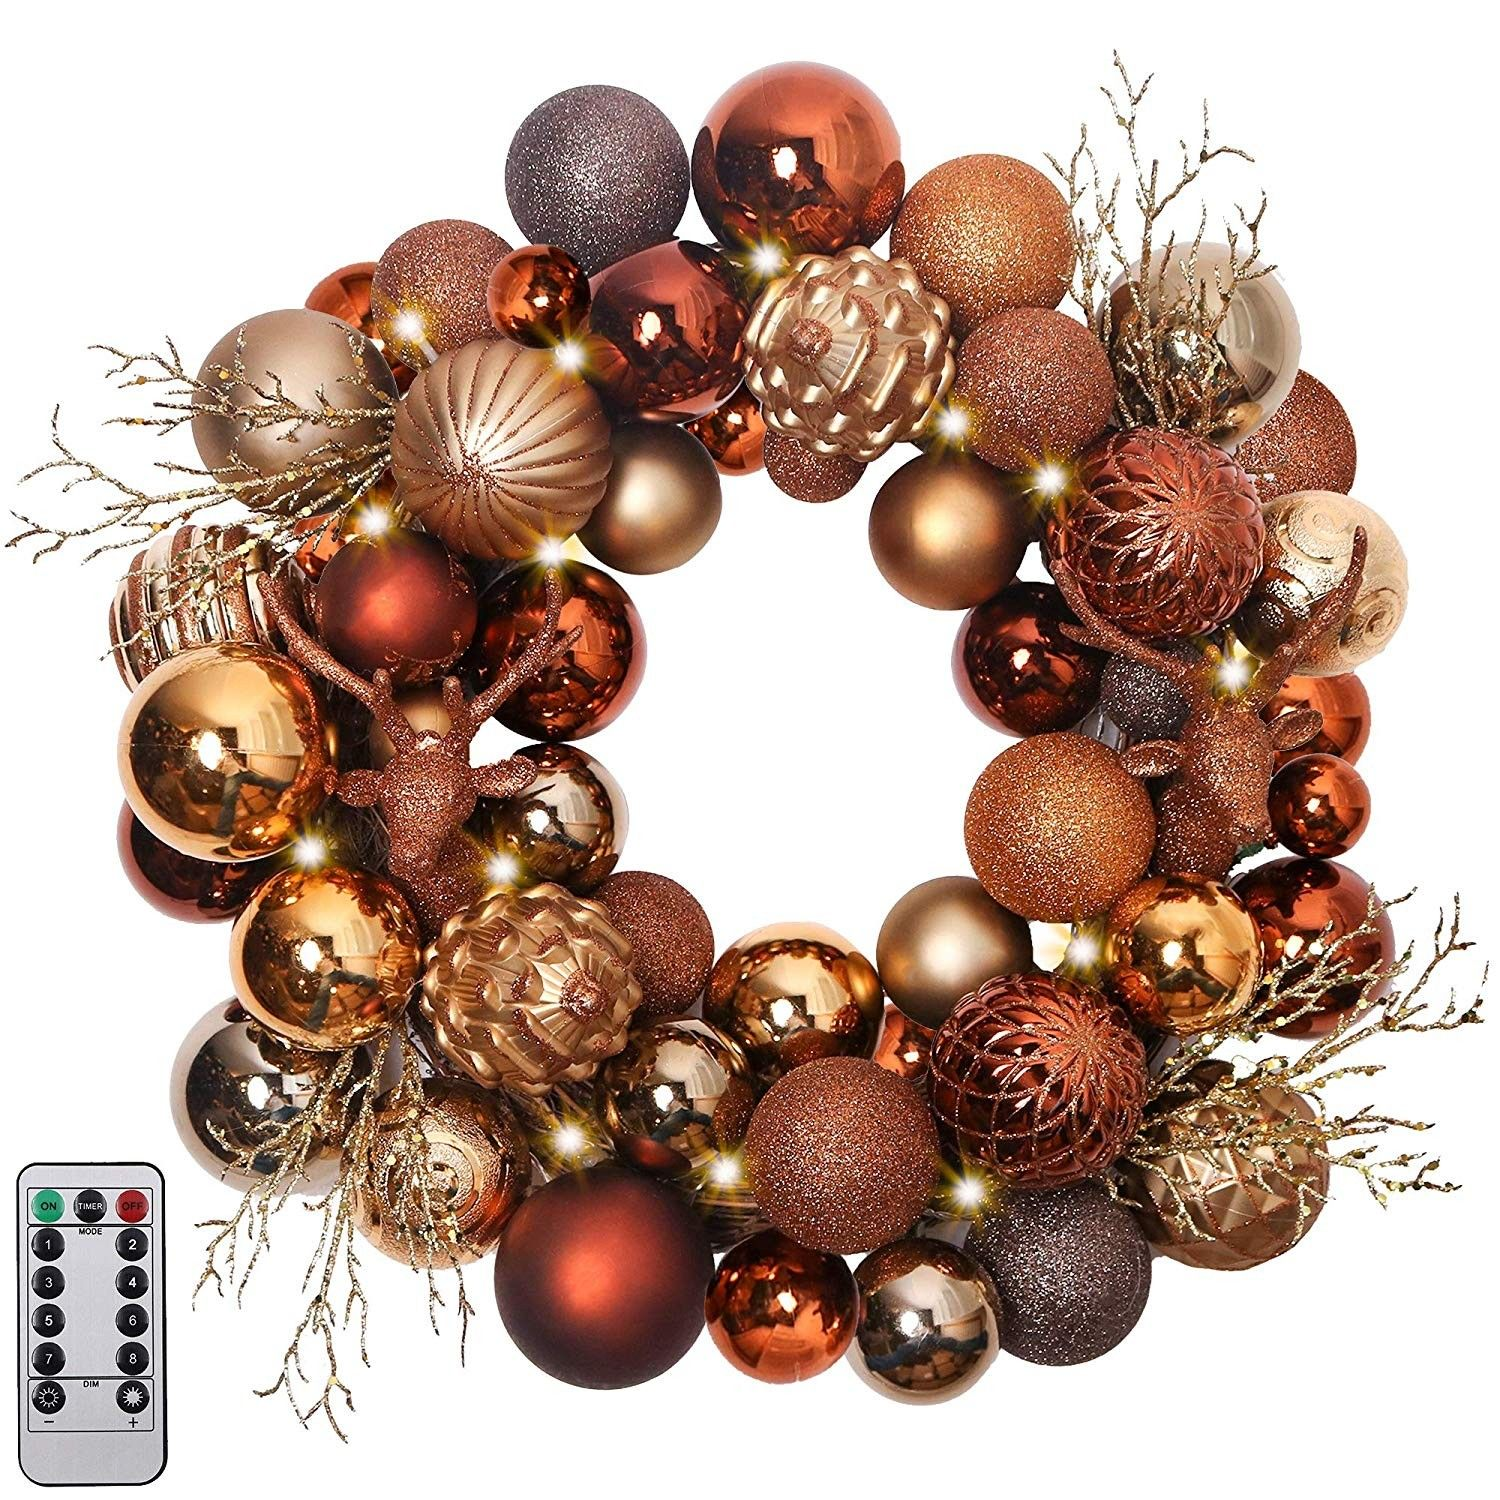 20 Pre Lit Woodland Christmas Wreath With Shatterproof Ball Ornaments Rattan Base With 20 Led Lights Remote And Timer Included Themed With Tree Skirt Not Christmas Wreaths Wreath Decor Ball Ornaments